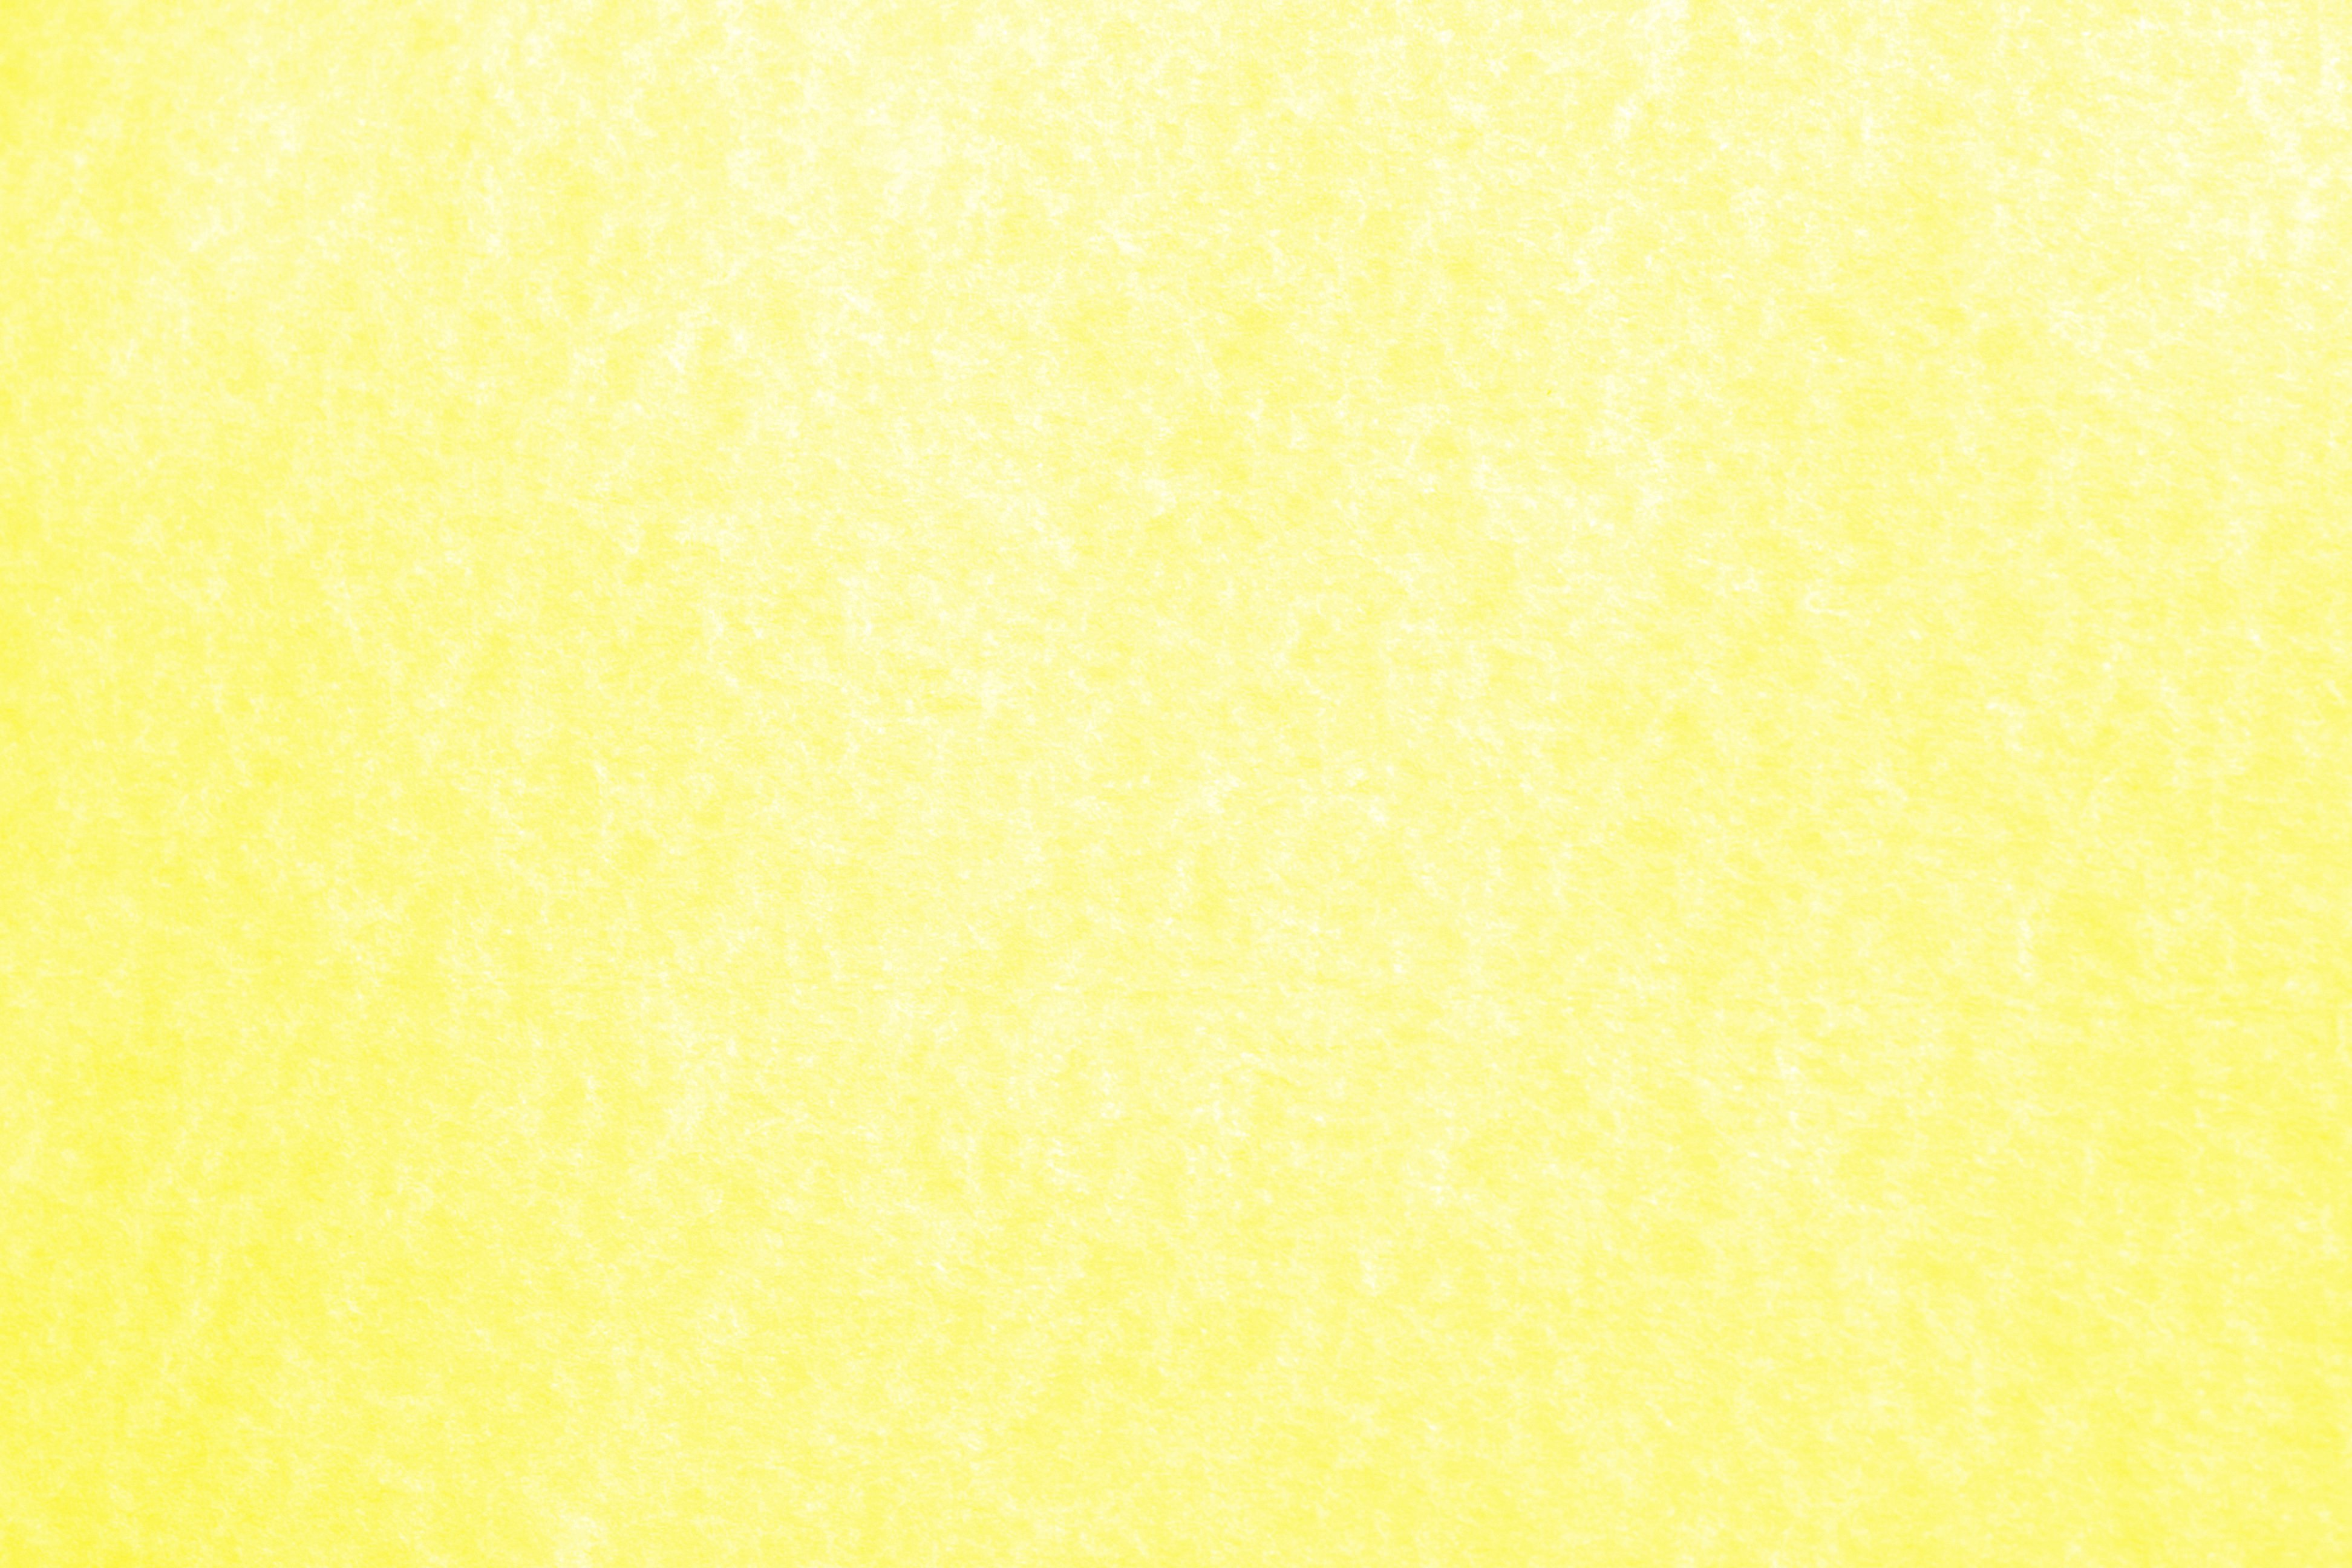 Yellow Parchment Paper Texture Picture | Free Photograph | Photos